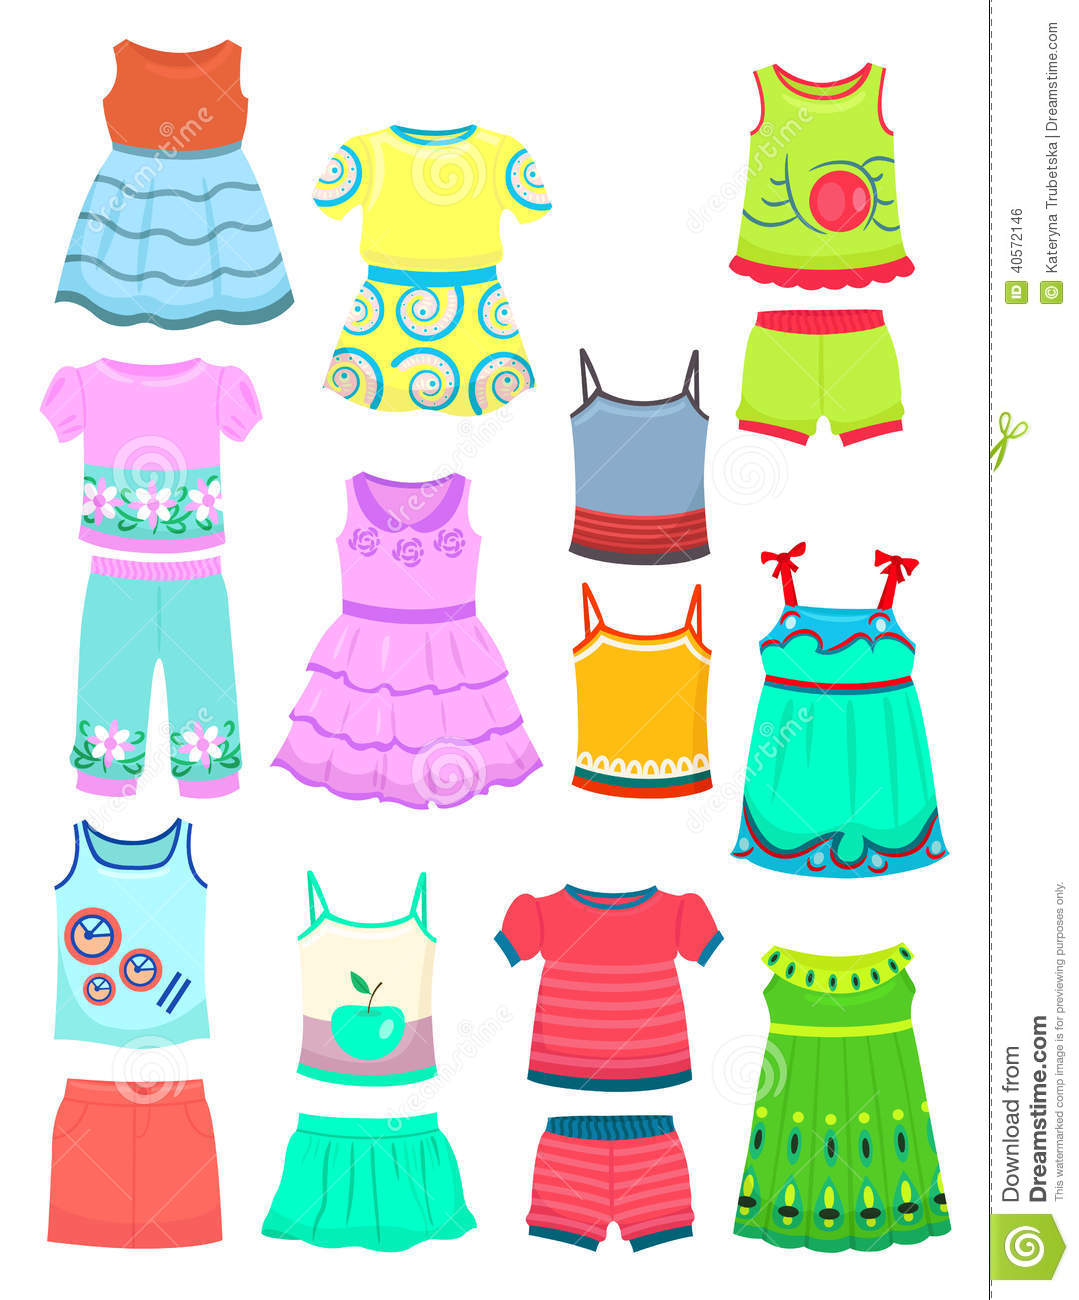 Clothes for girls clipart 4 » Clipart Station.